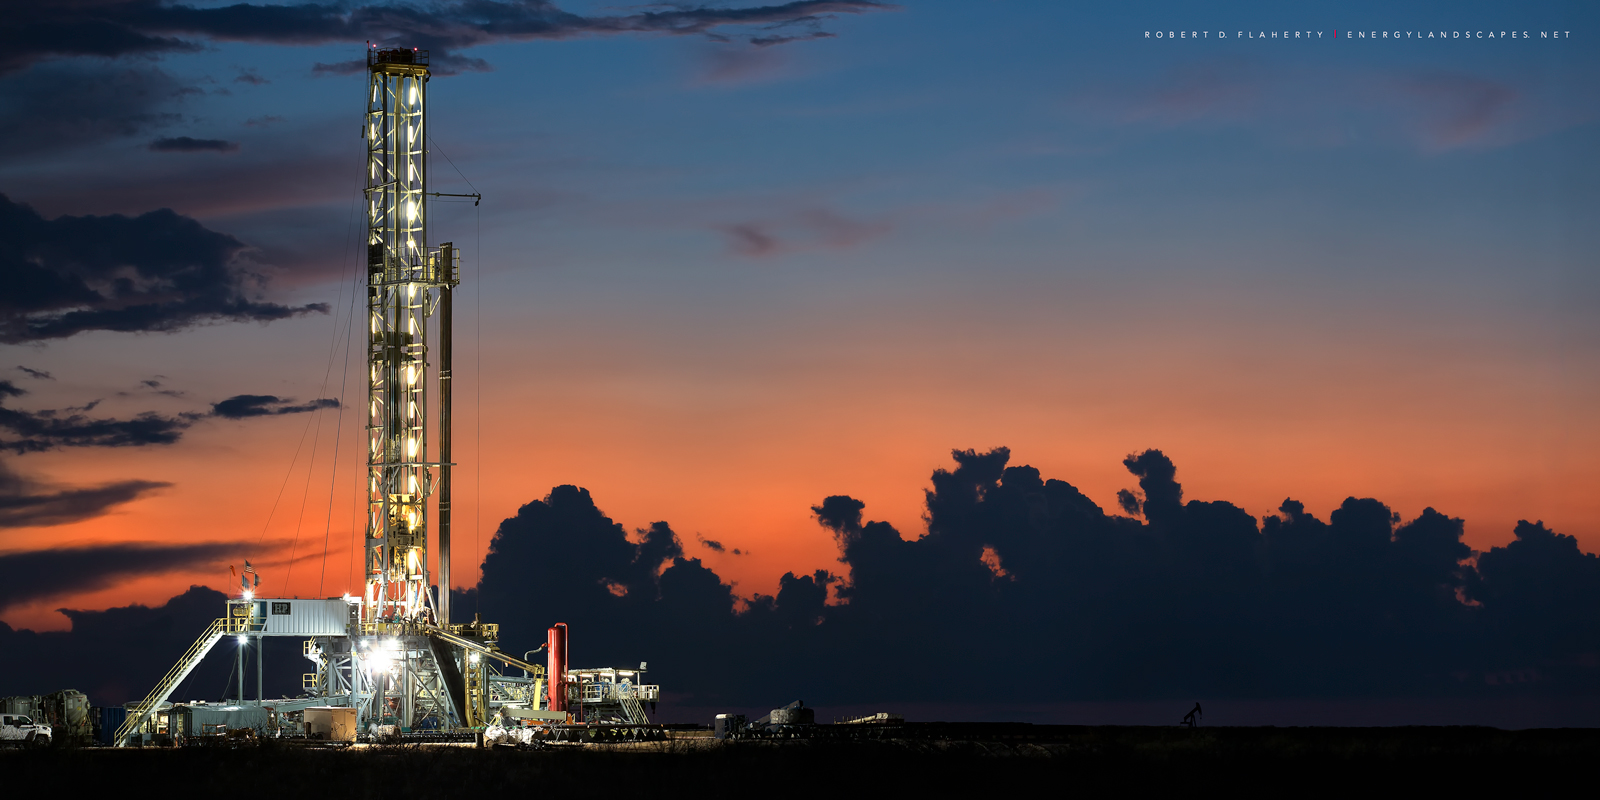 H&P, Drilling, Drilling rig, golden hour, Andrews Texas, sunset, Oil and Gas photography, photo